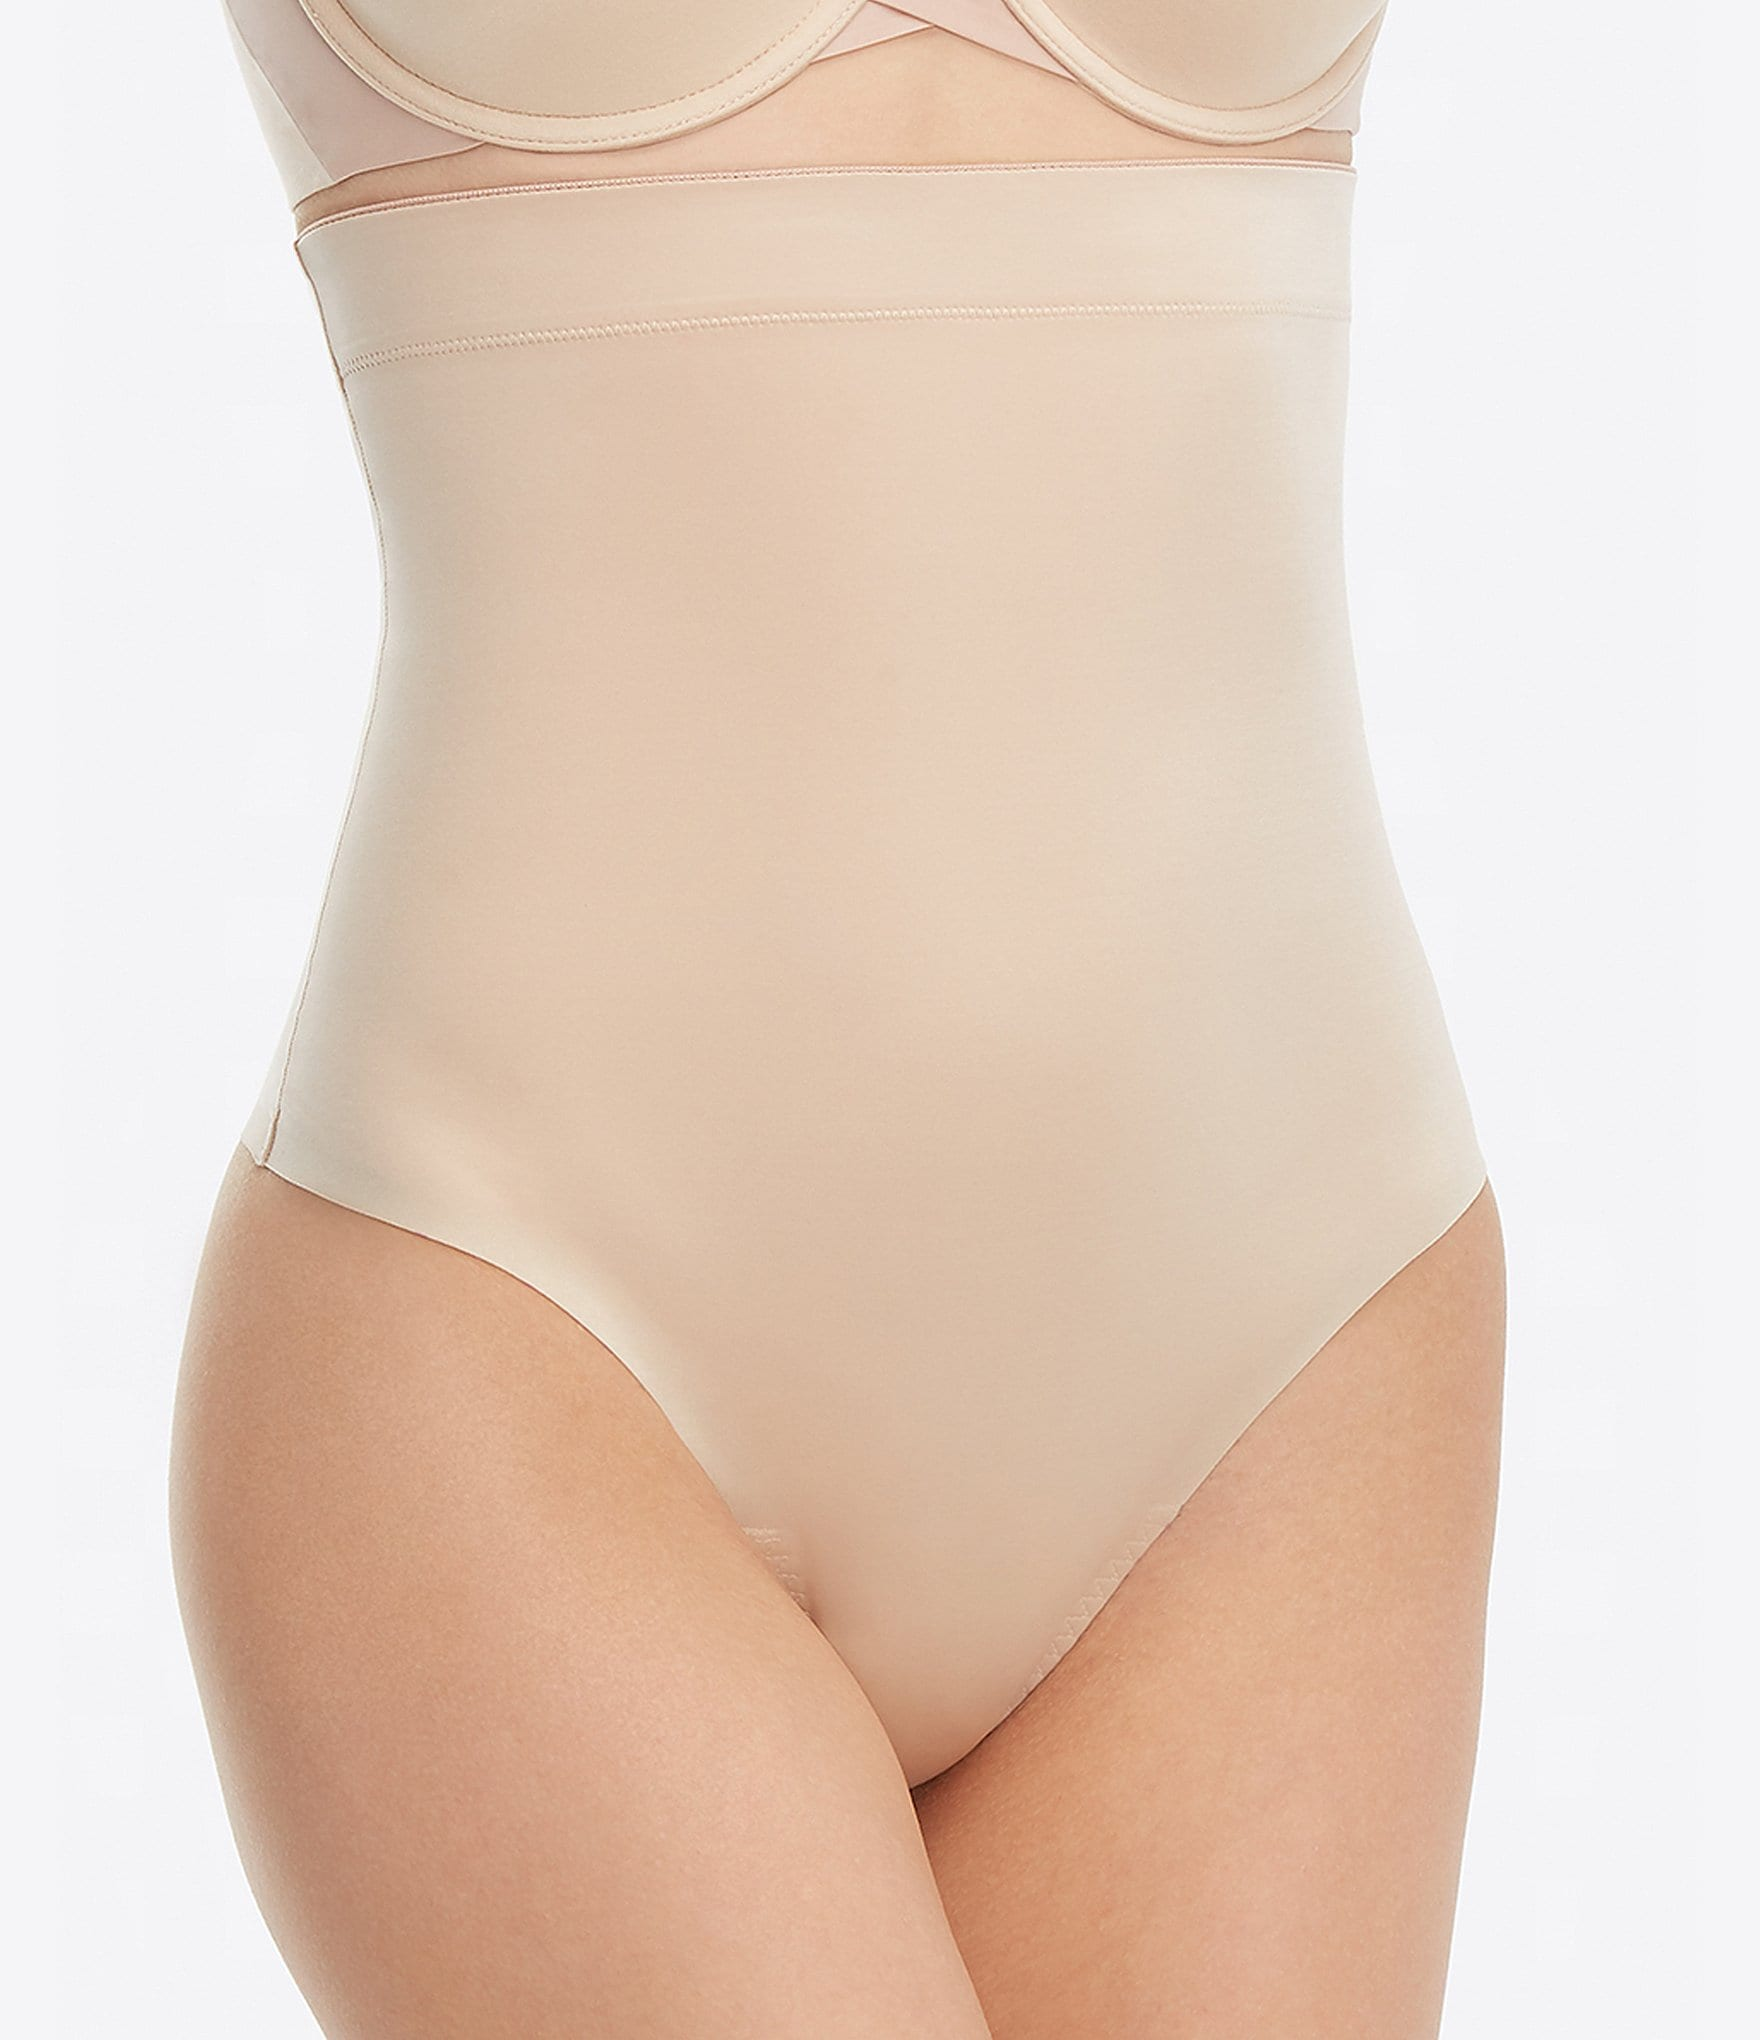 04b9eec8c7b Spanx Plus Size Suit Your Fancy High-Waisted Thong